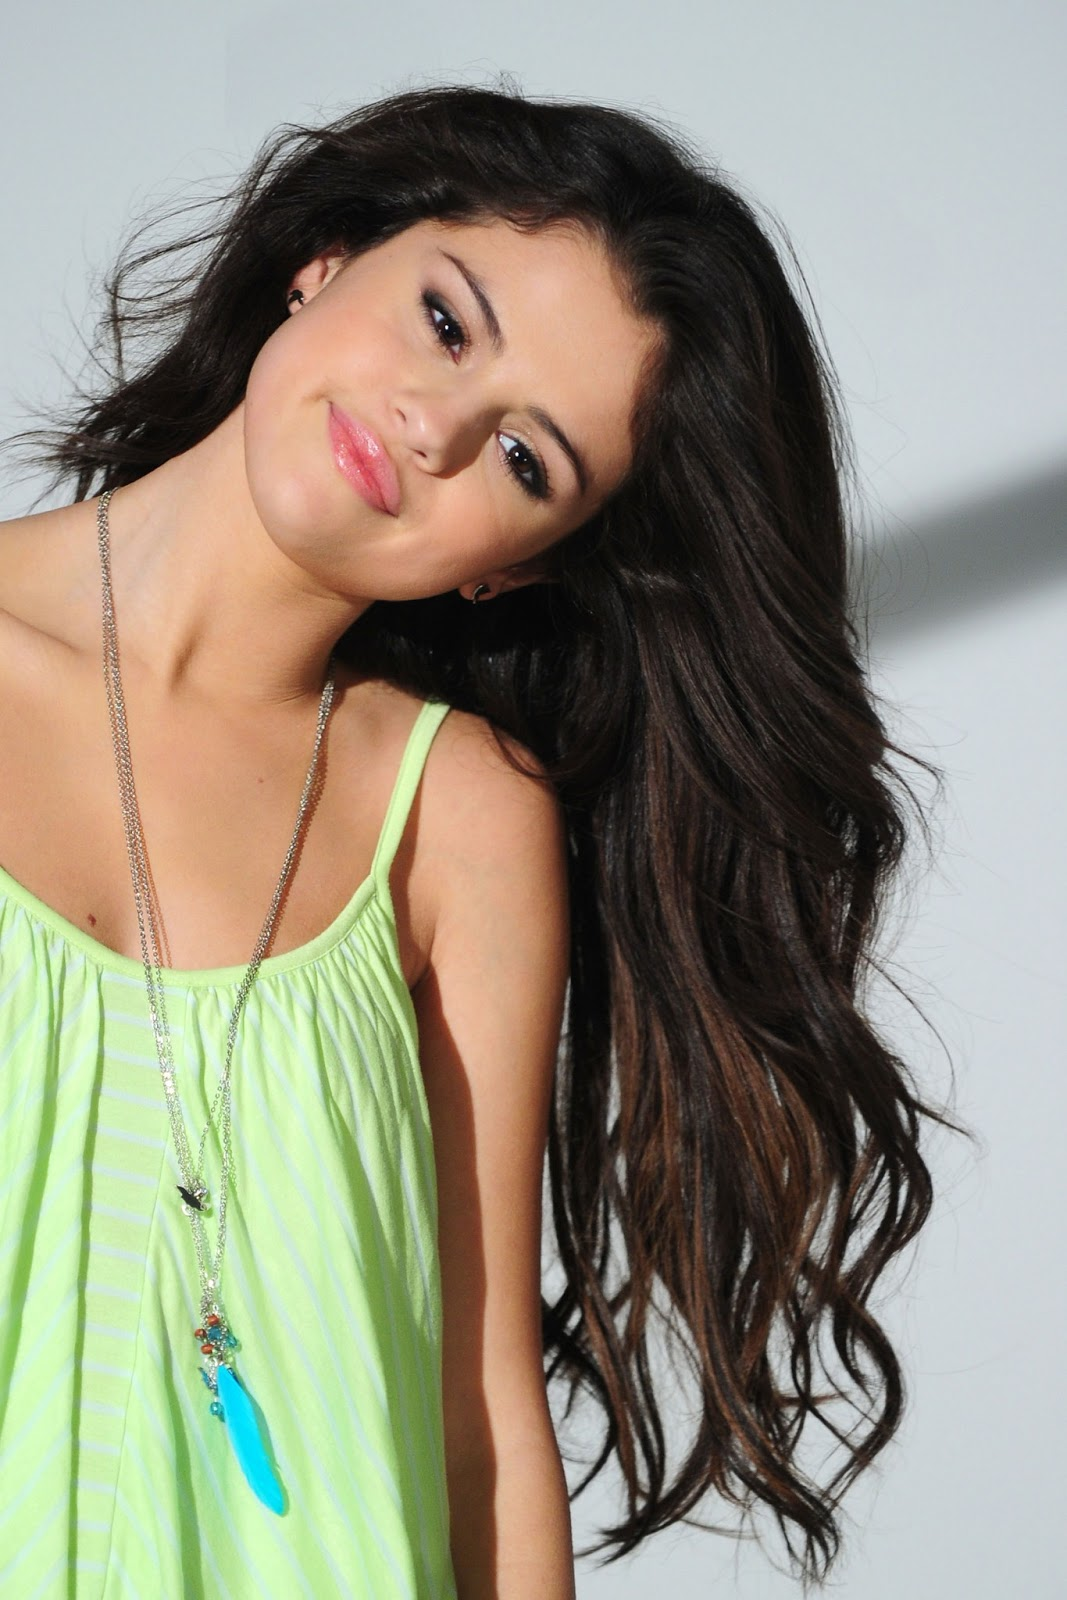 Wallpapers For Desktop Background Free Downloadselena Gomez Spring Breakers Wizard Of Lovely Place Hd Postures Images Photos And Pictures